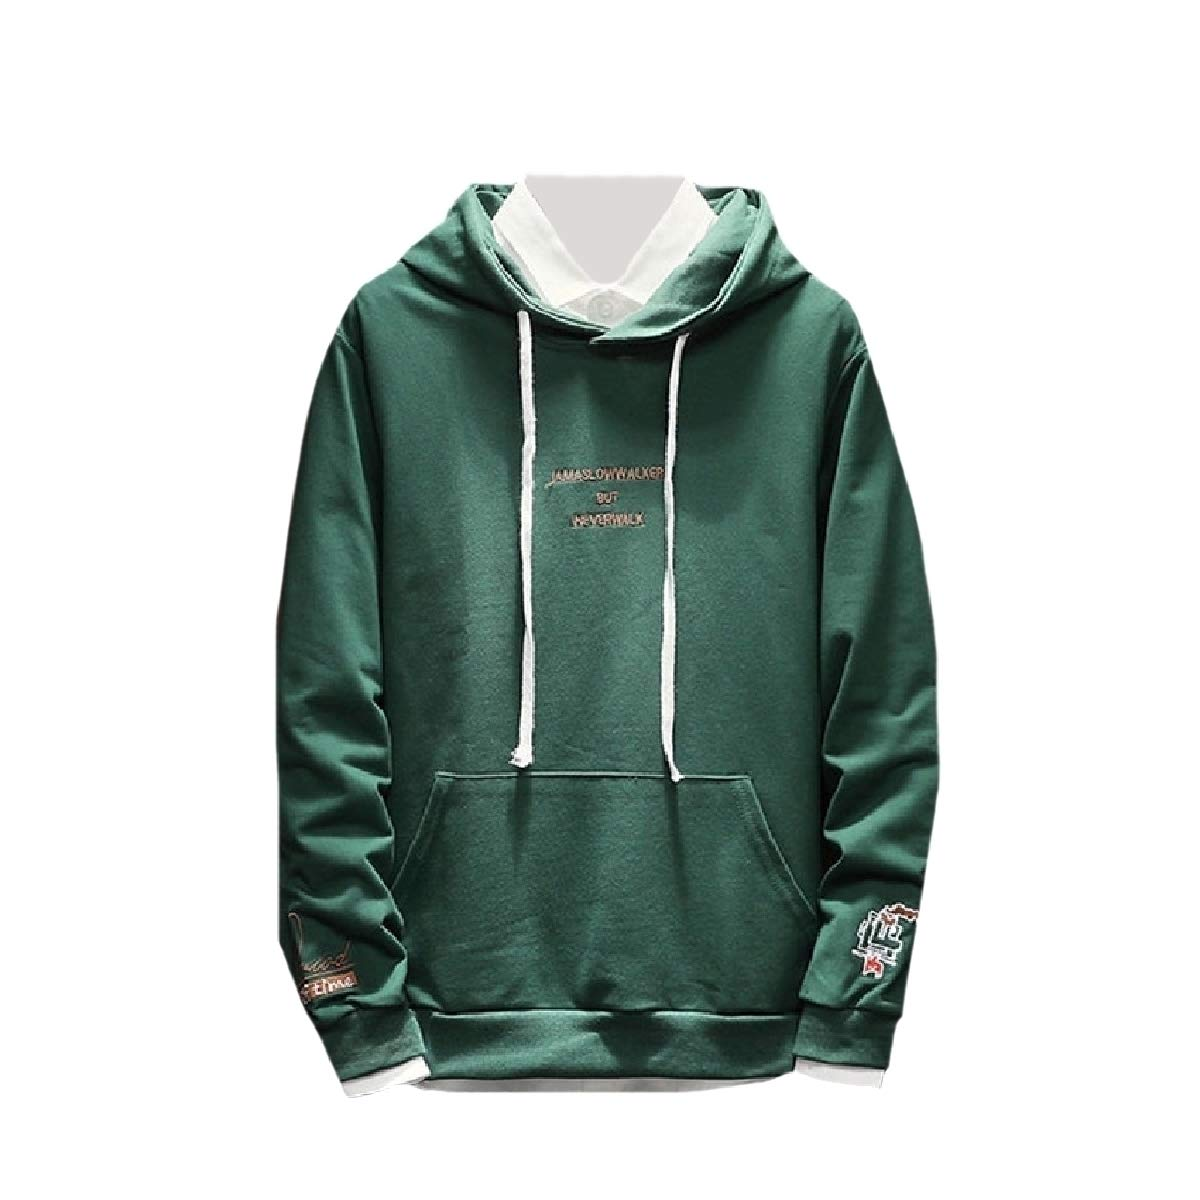 YUNY Mens Long-Sleeve Pullover Pockets Embroidery Hoodies Sweater Green L